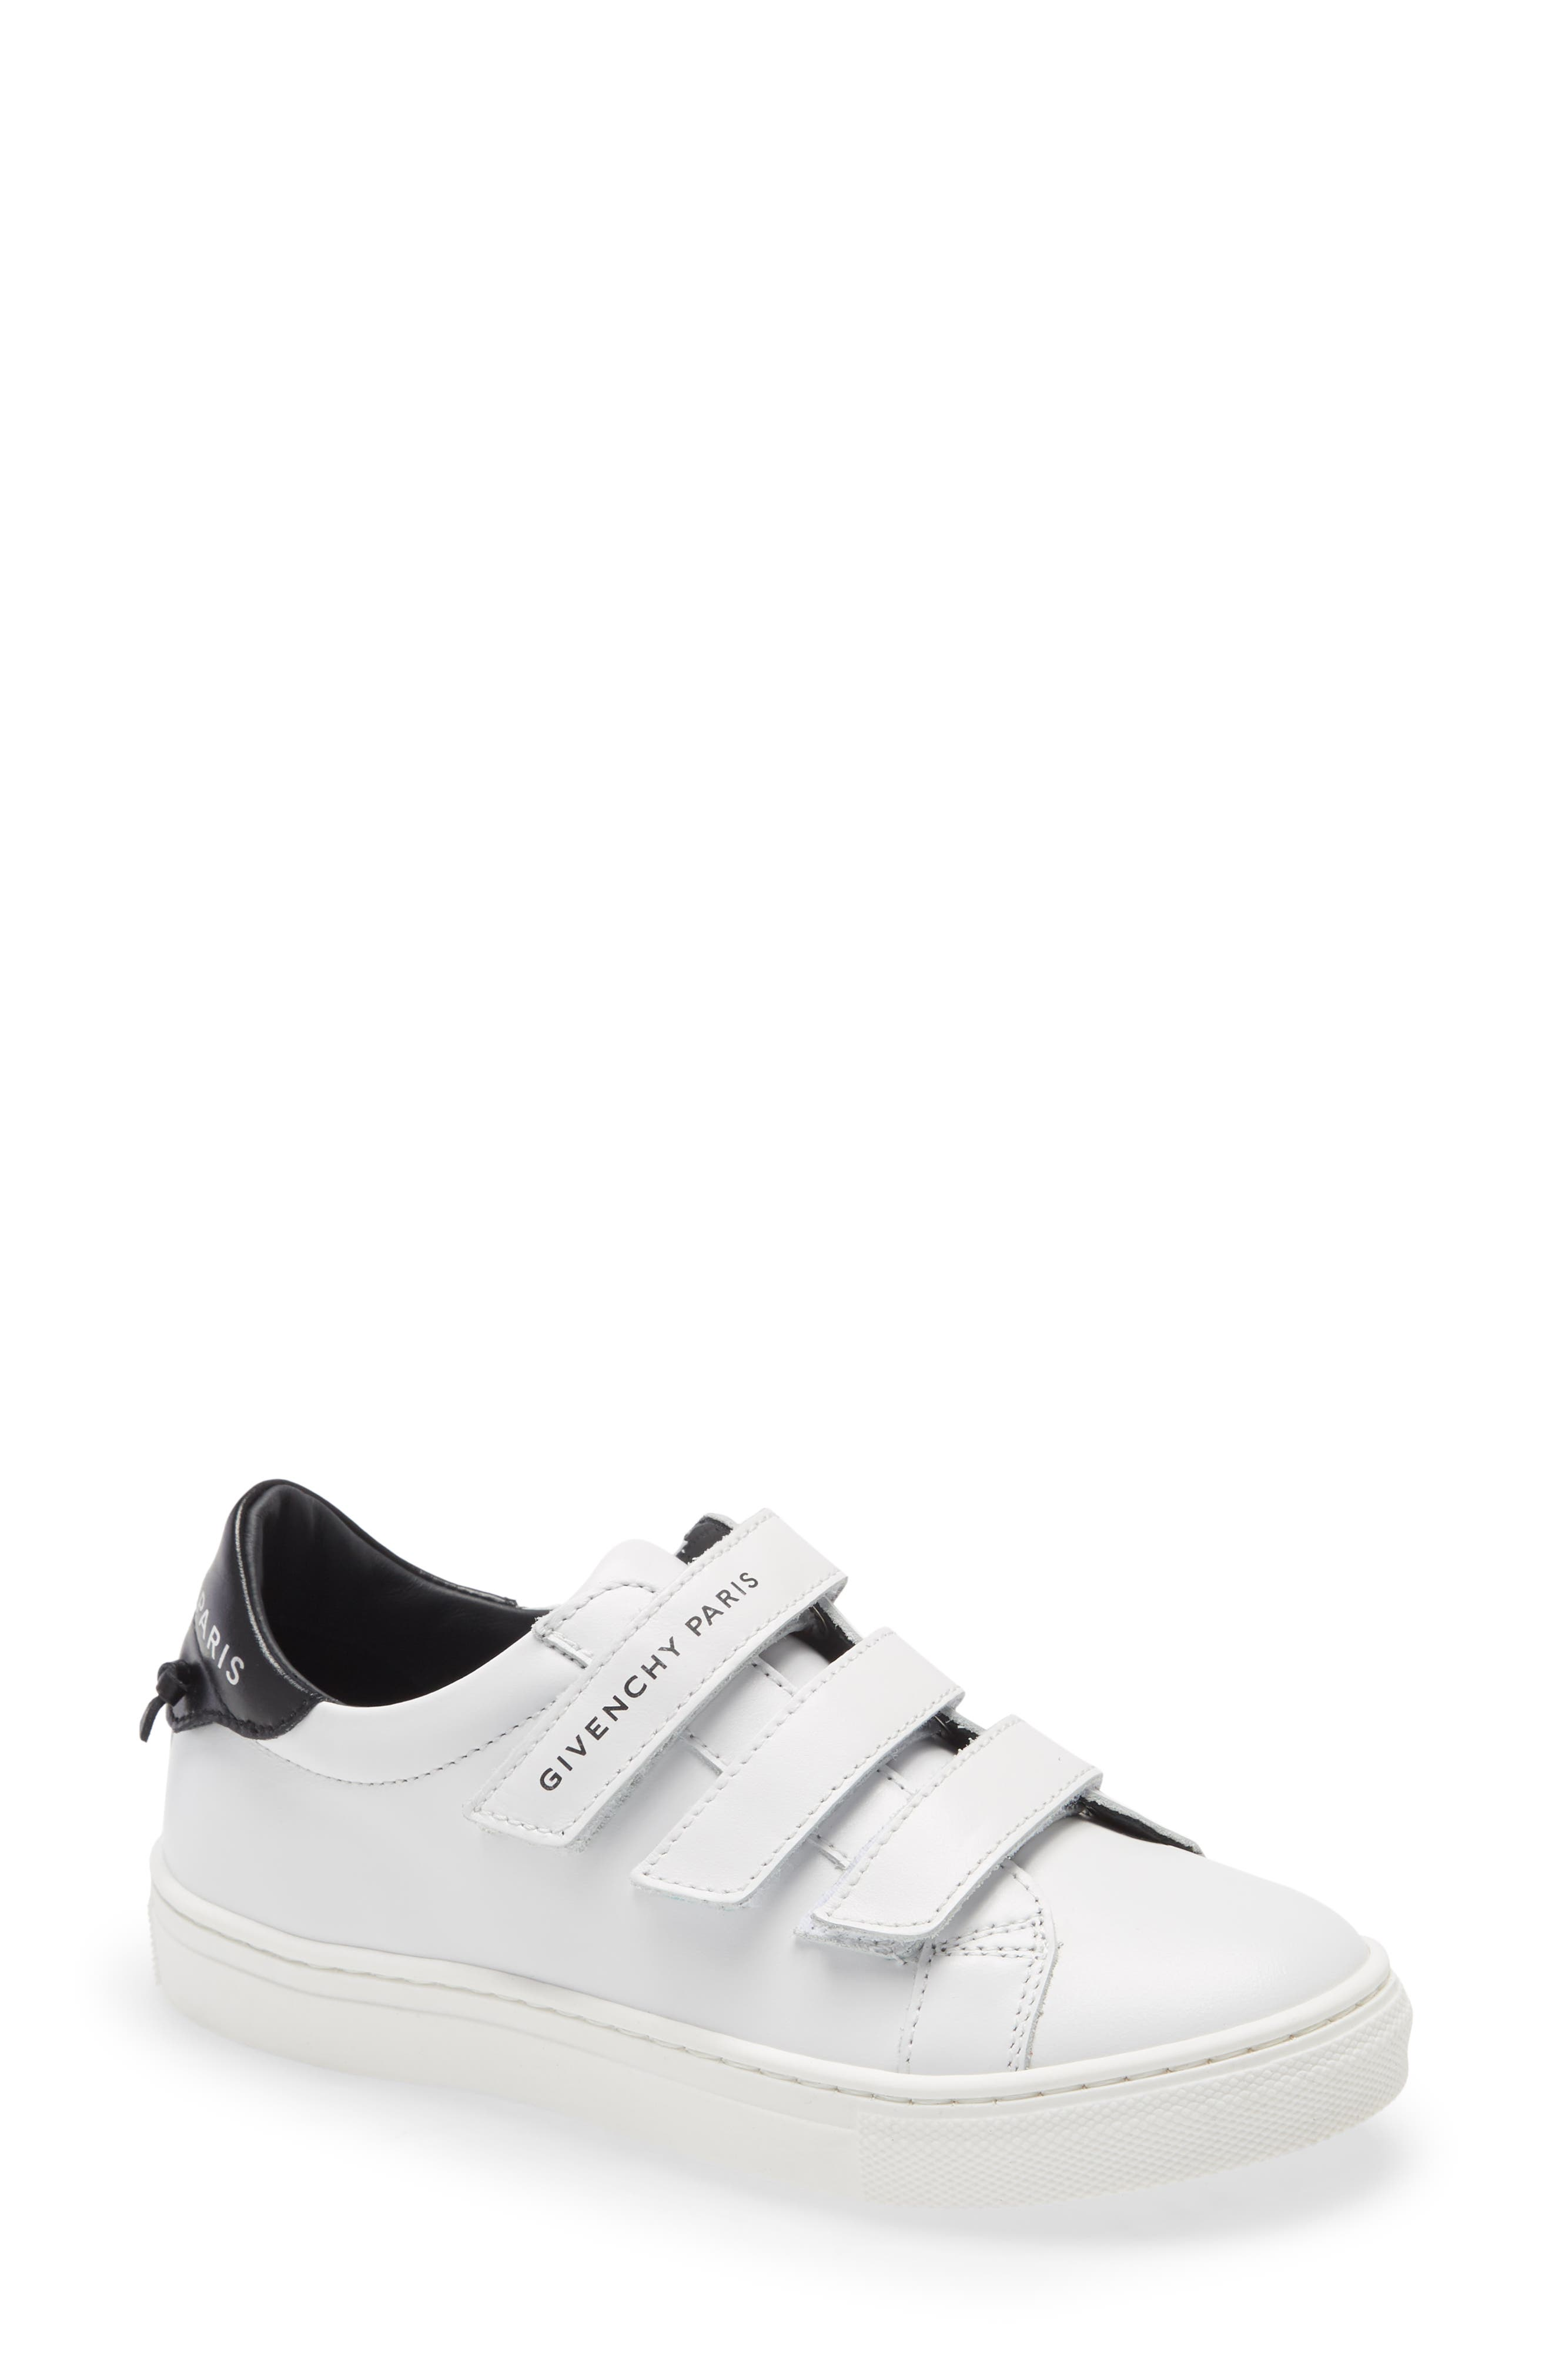 Boys' Givenchy Shoes